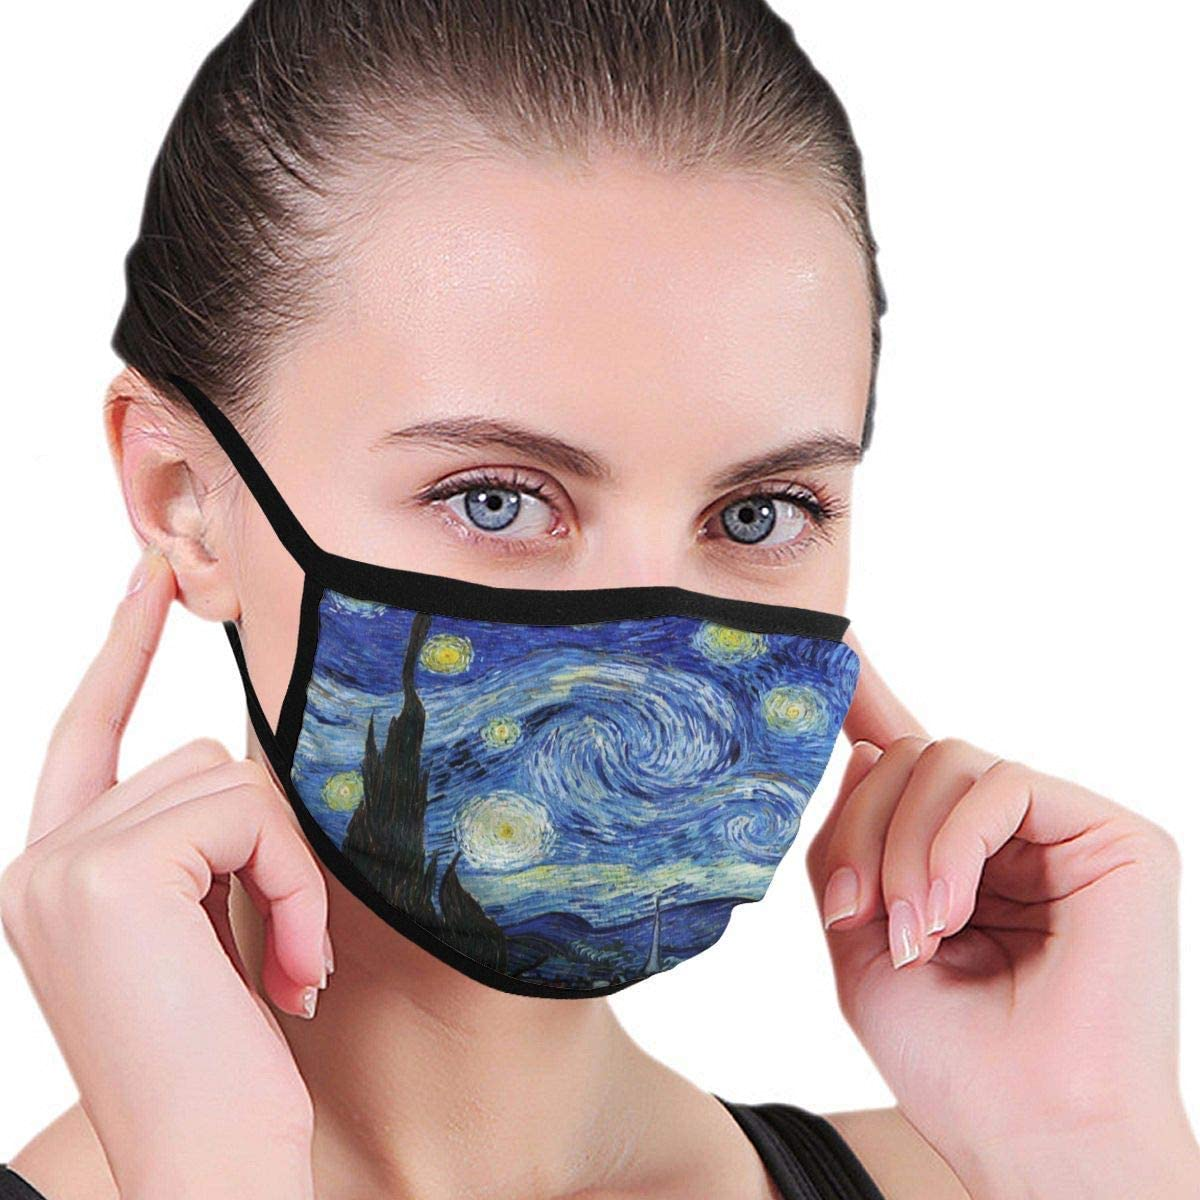 Mouth Cover Starry Night By Vincent Van Gogh Dust Breathable Reusable Ear Loop Unisex Face Scarf Windproof Protective Face Wear